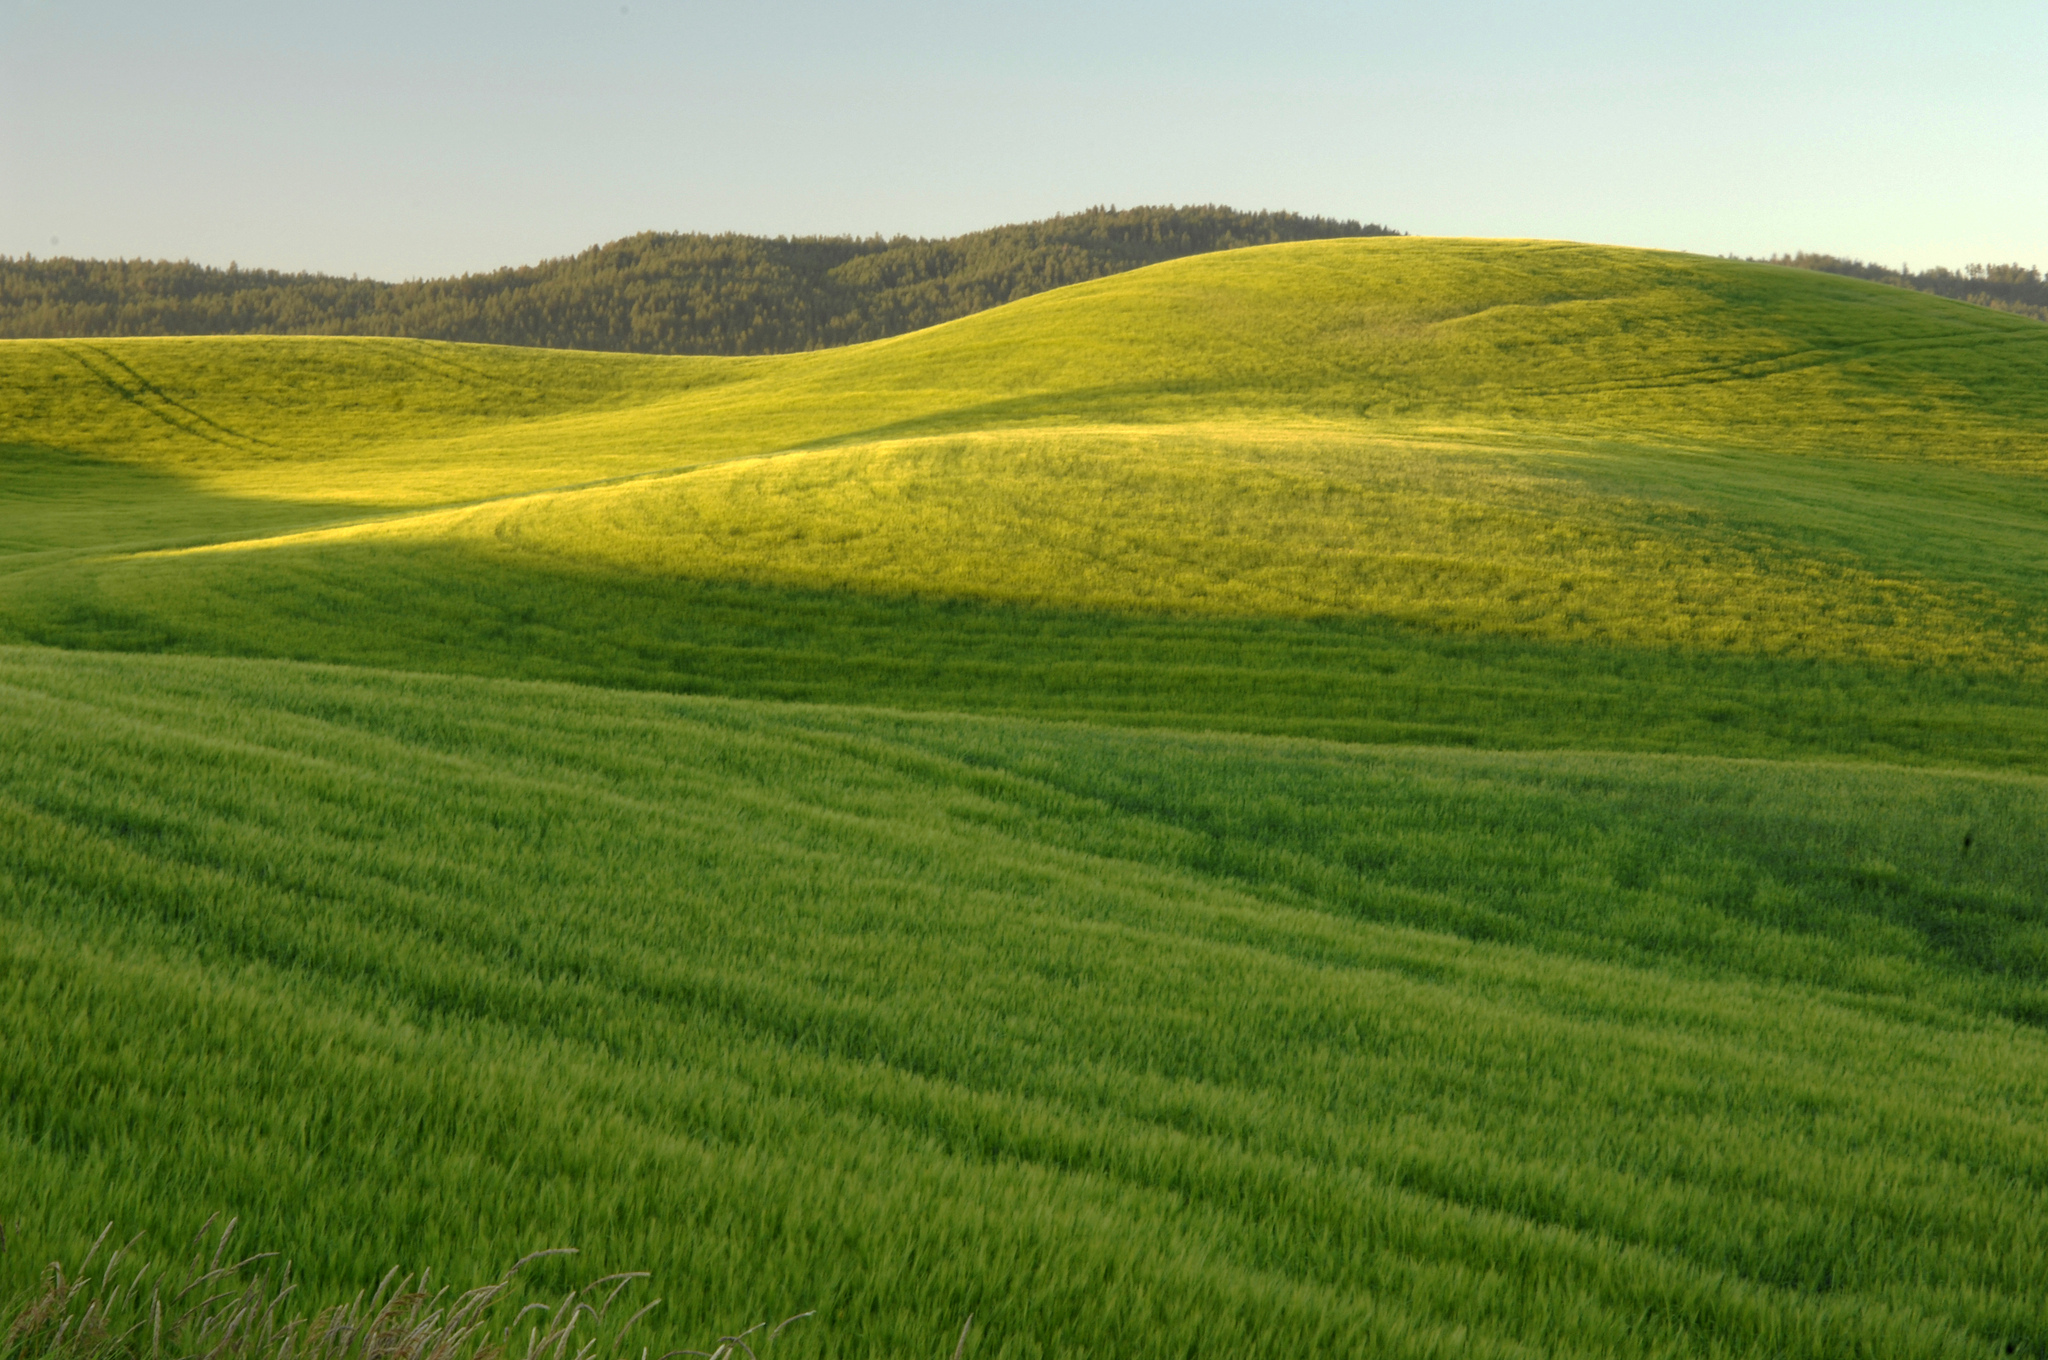 A field near Moscow, Idaho